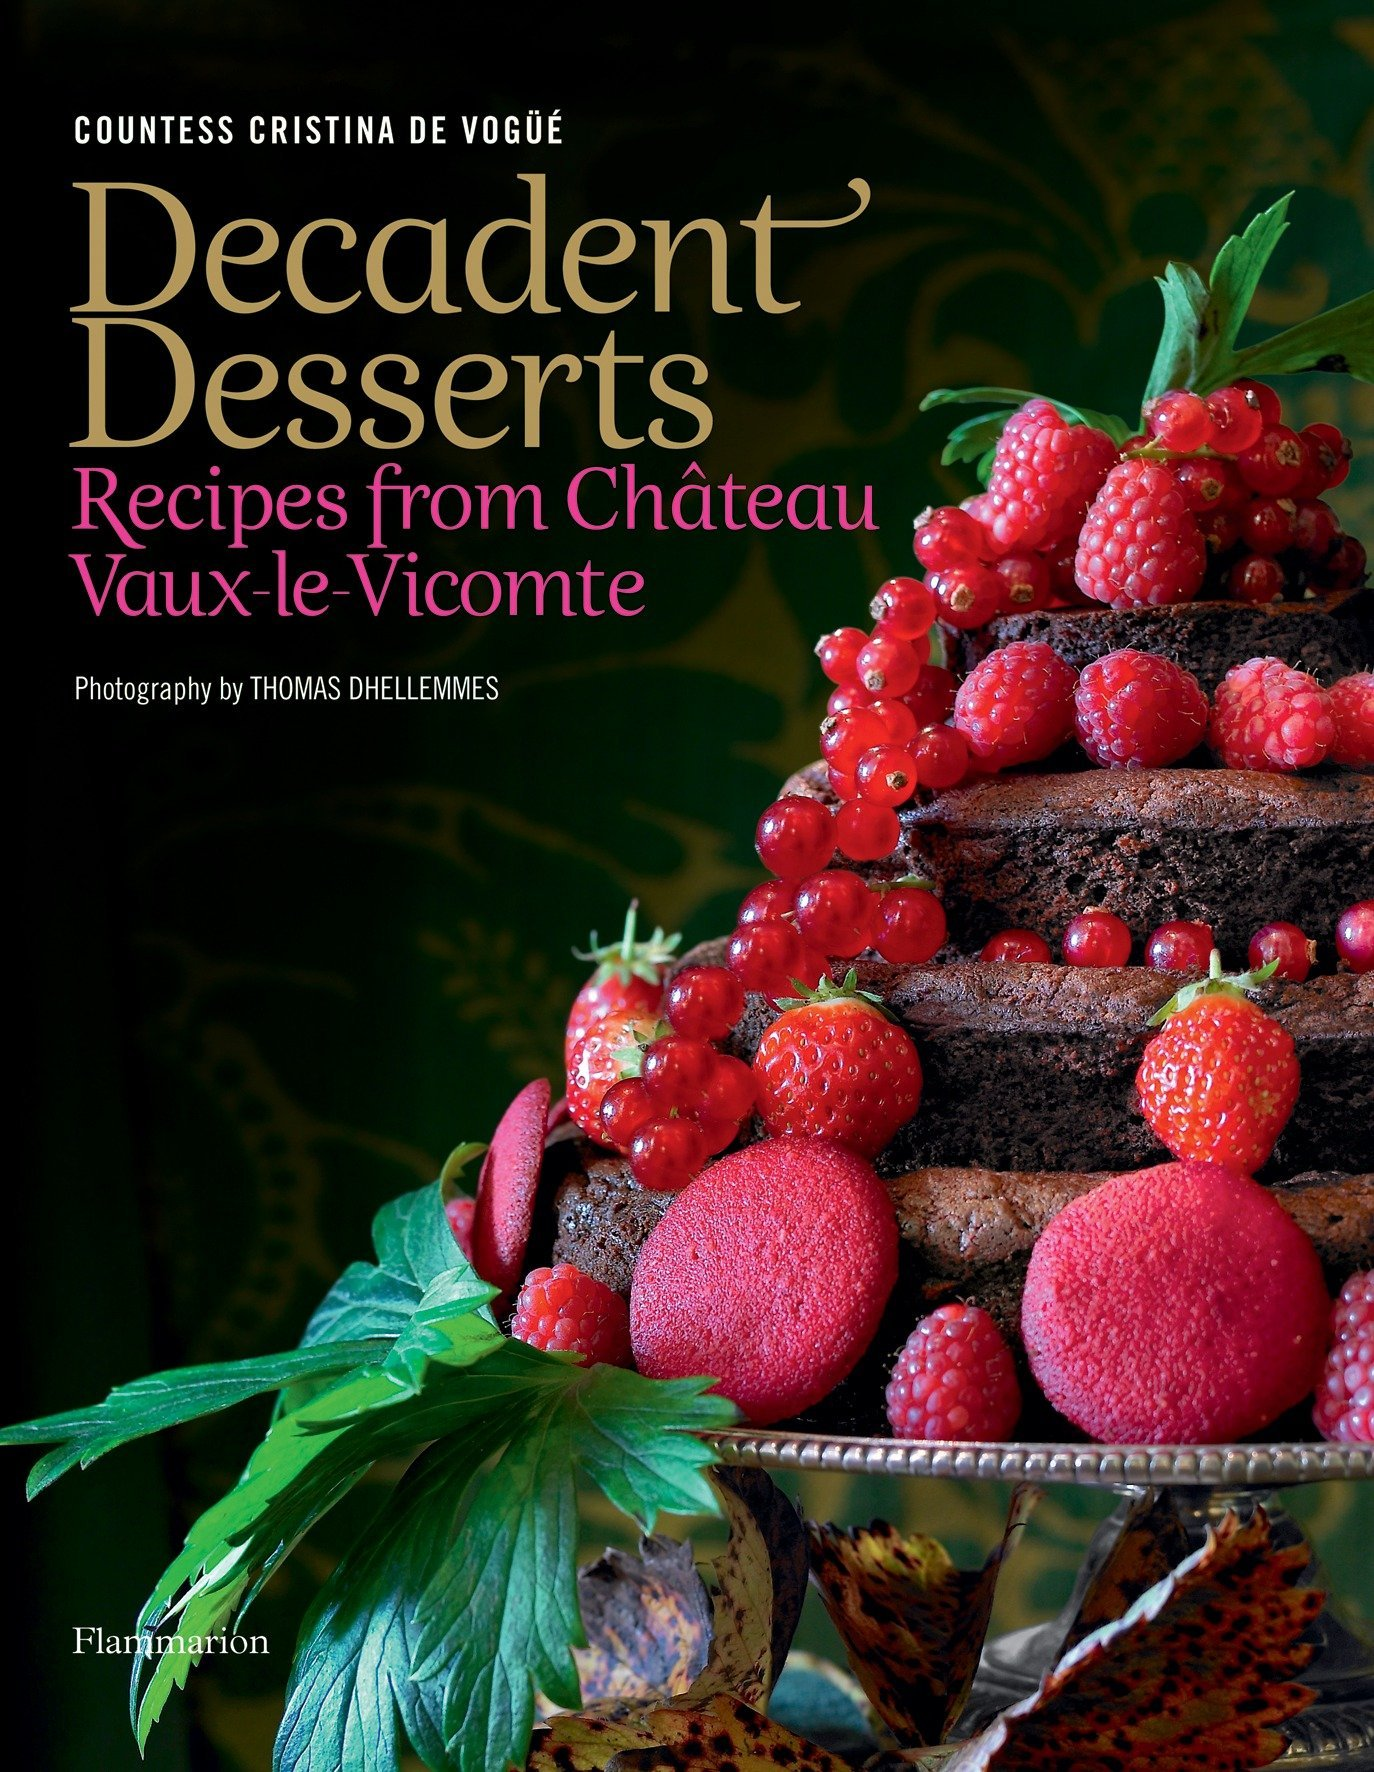 Decadent Desserts: Recipes from Chateau Vaux-le-Vicomte by Brand: Flammarion